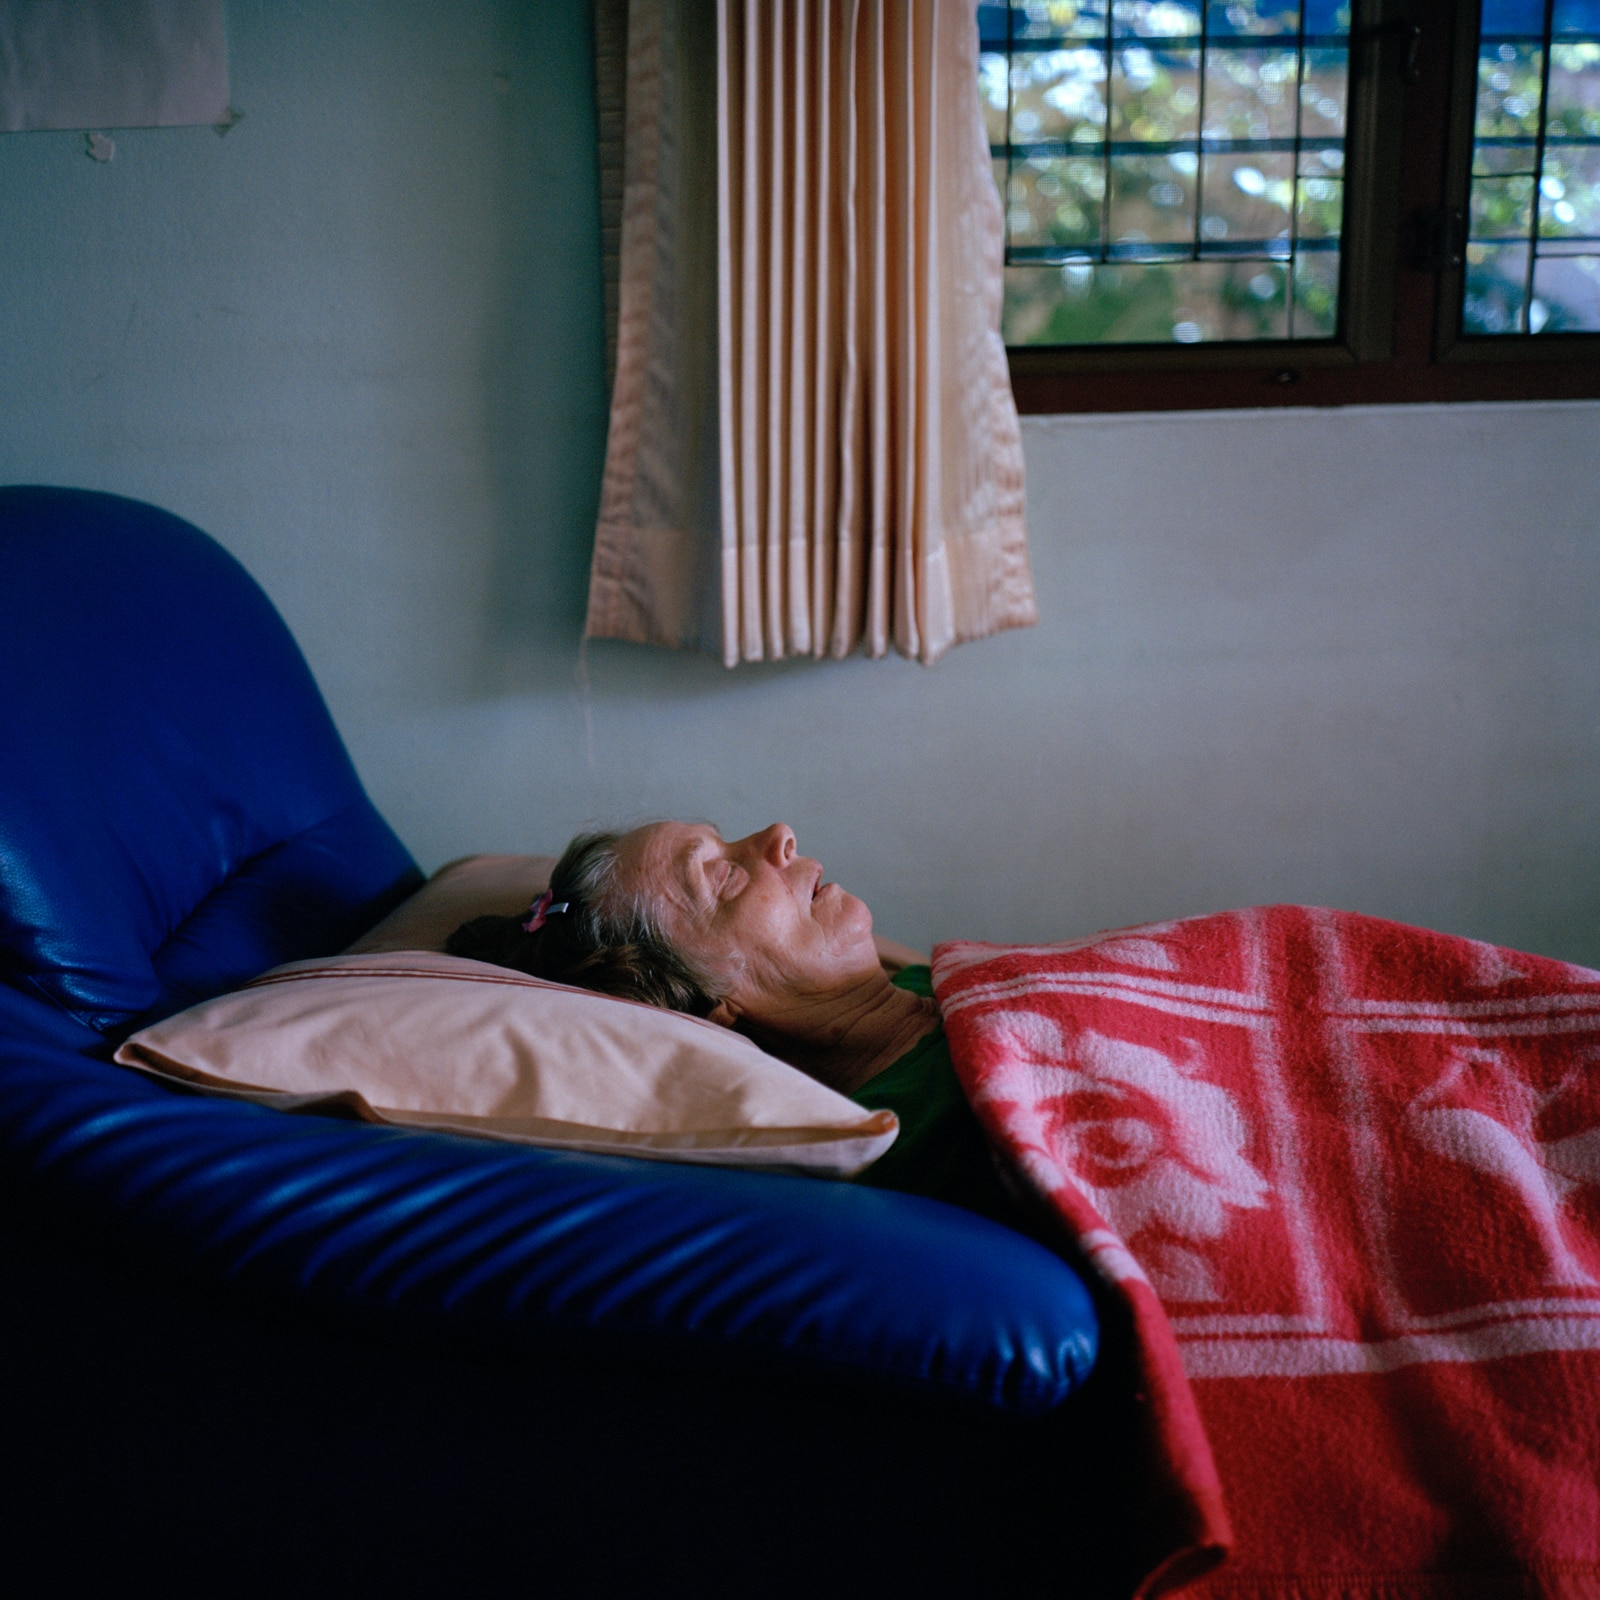 Philippina, 73, has been living at the centre for six years. She likes to spend her afternoons lying on the couch.